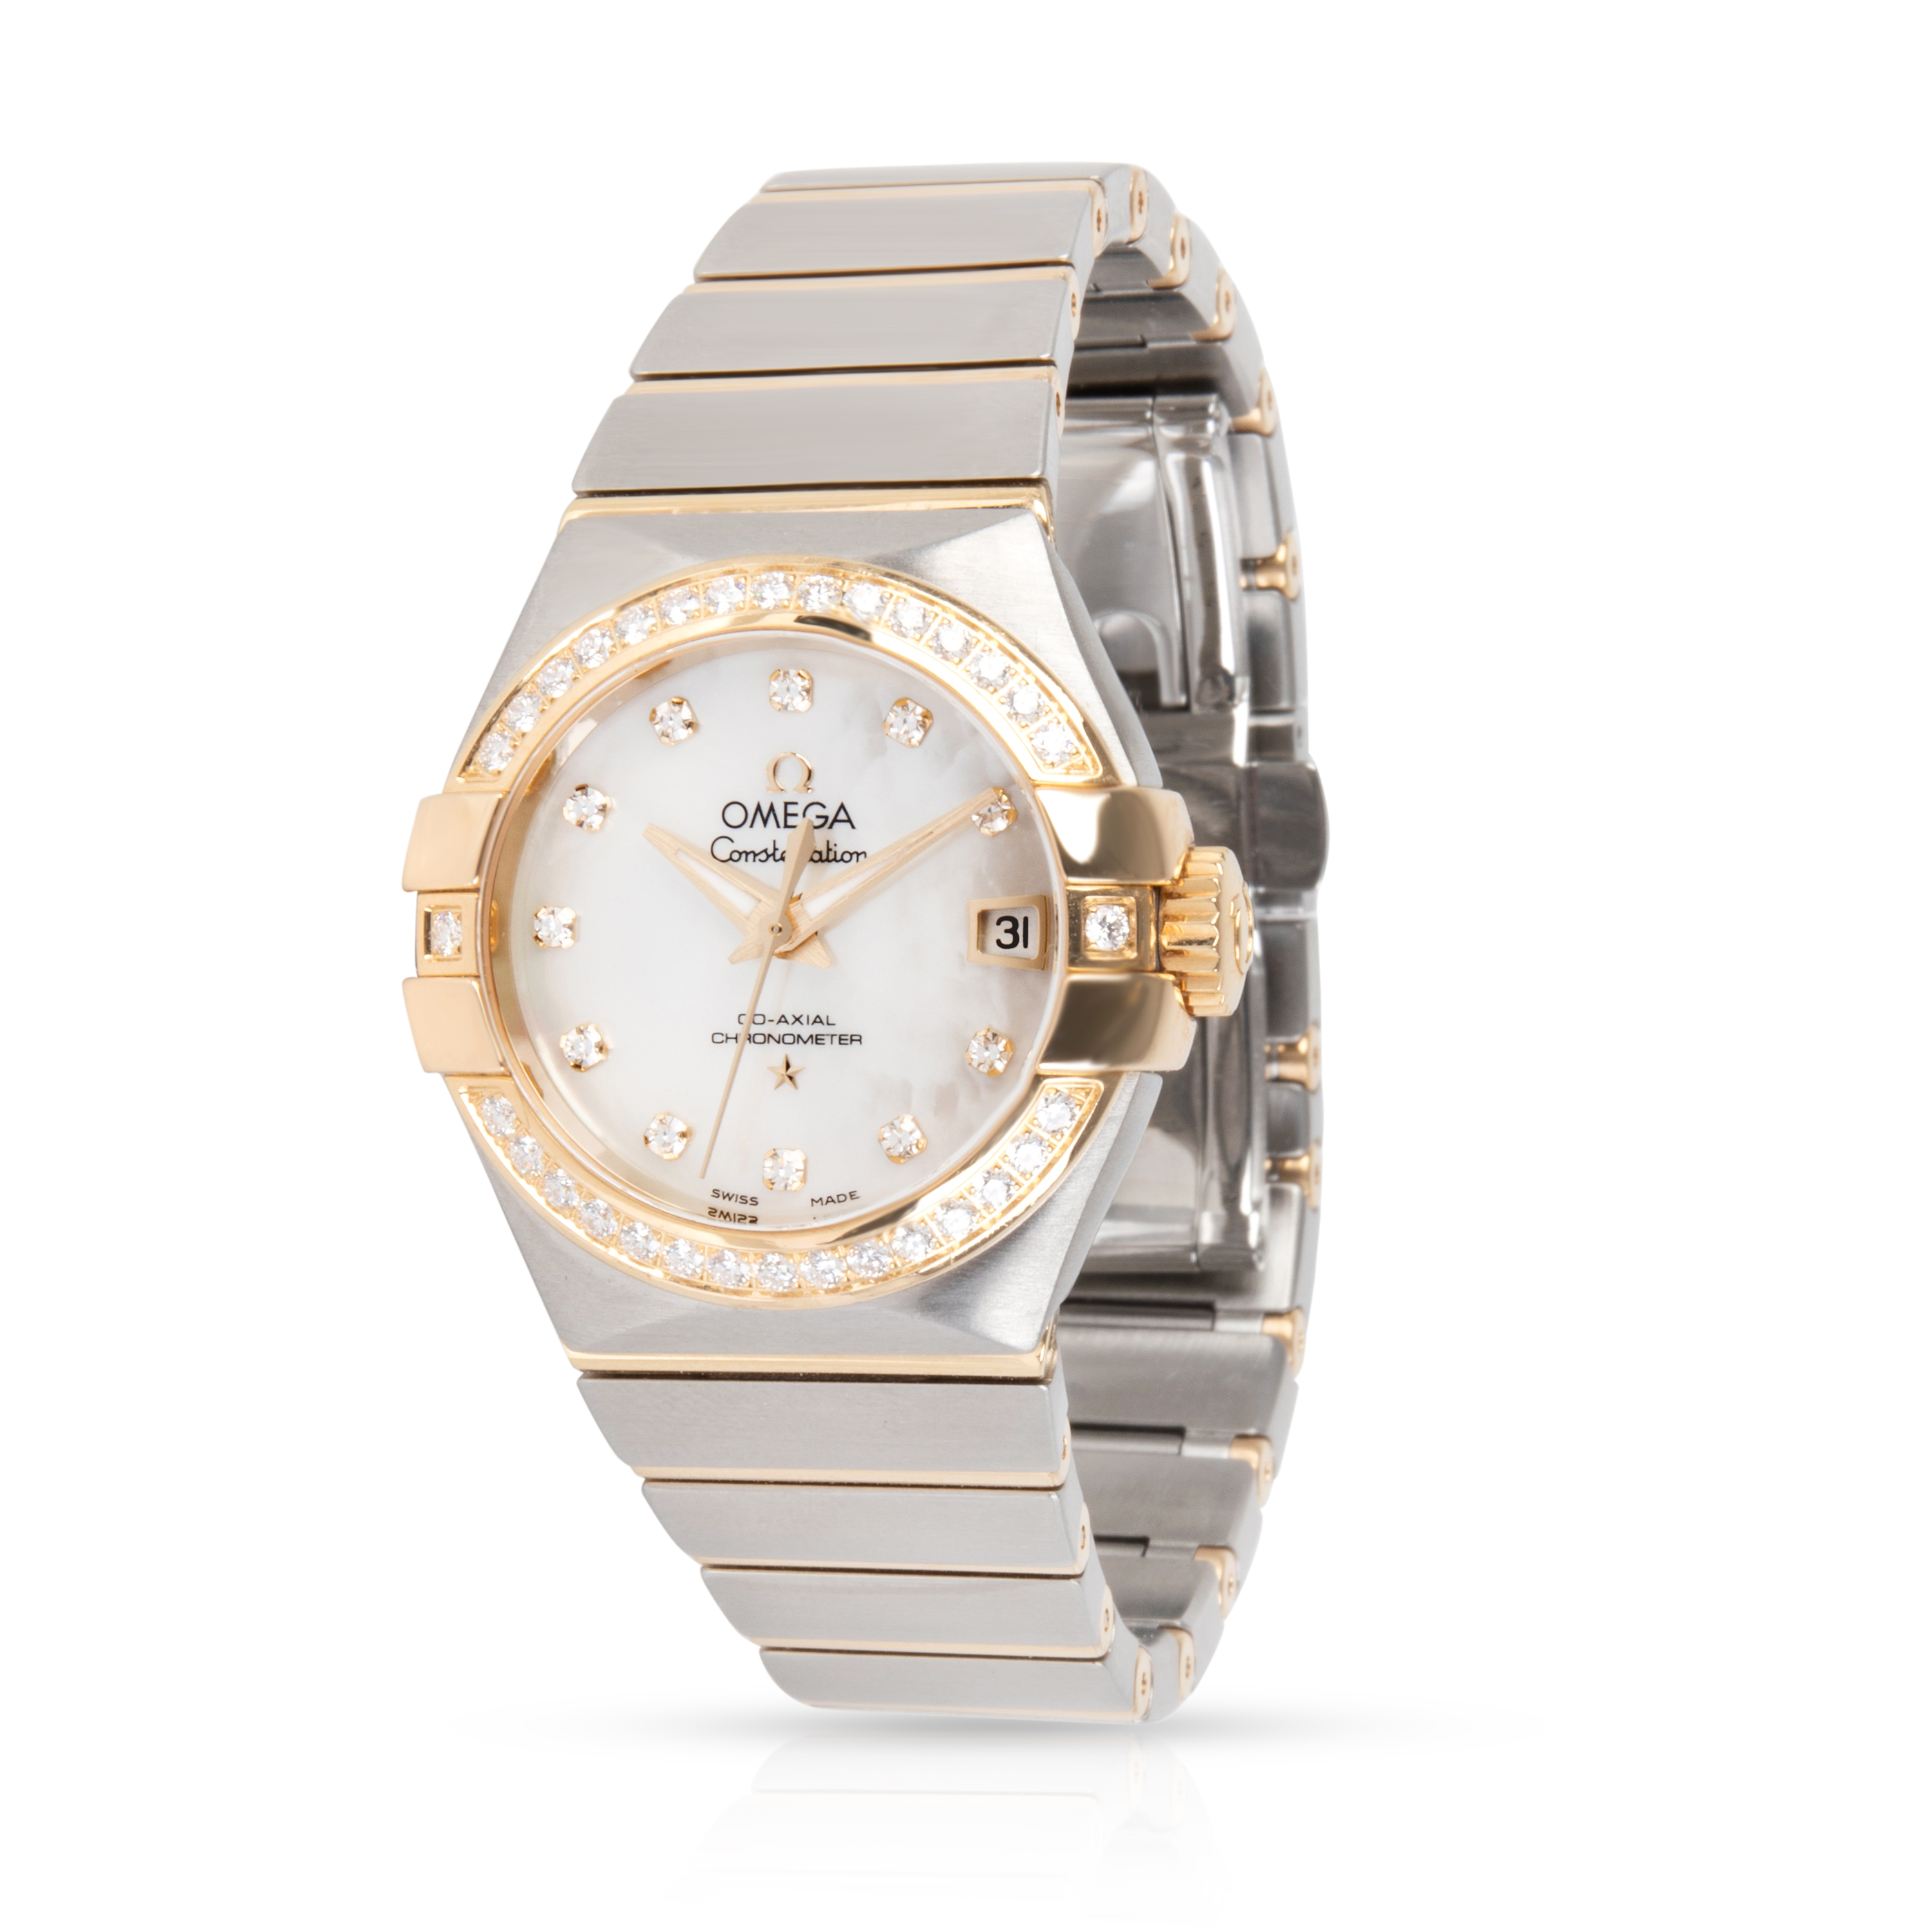 Omega Constellation 123.25.27.20.55.003 Women's Watch in Stainless Steel/Yellow Gold